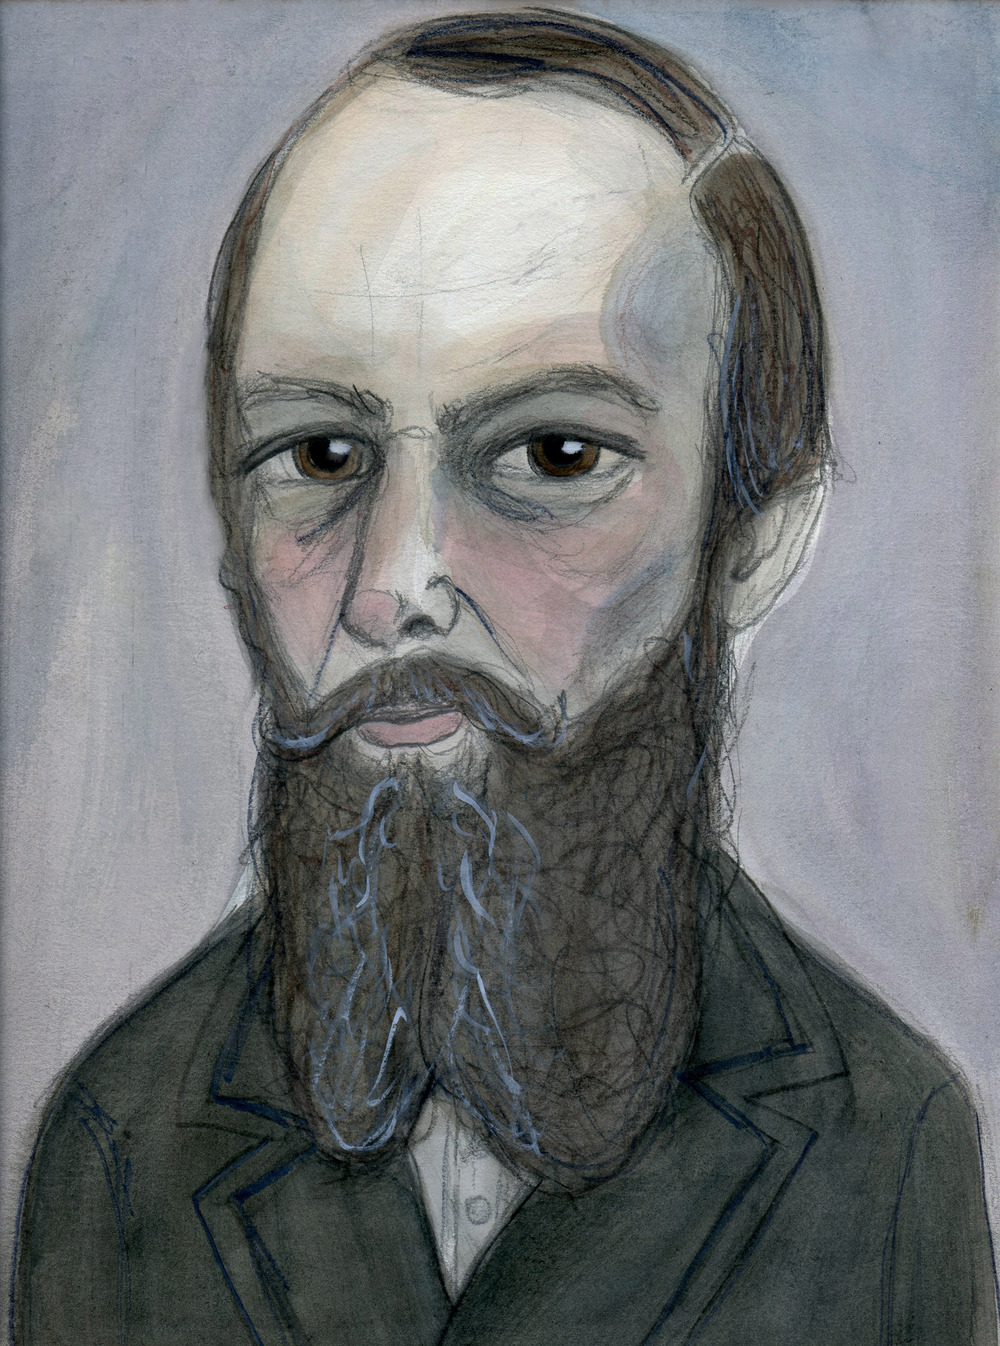 Notes from Dostoyevsky